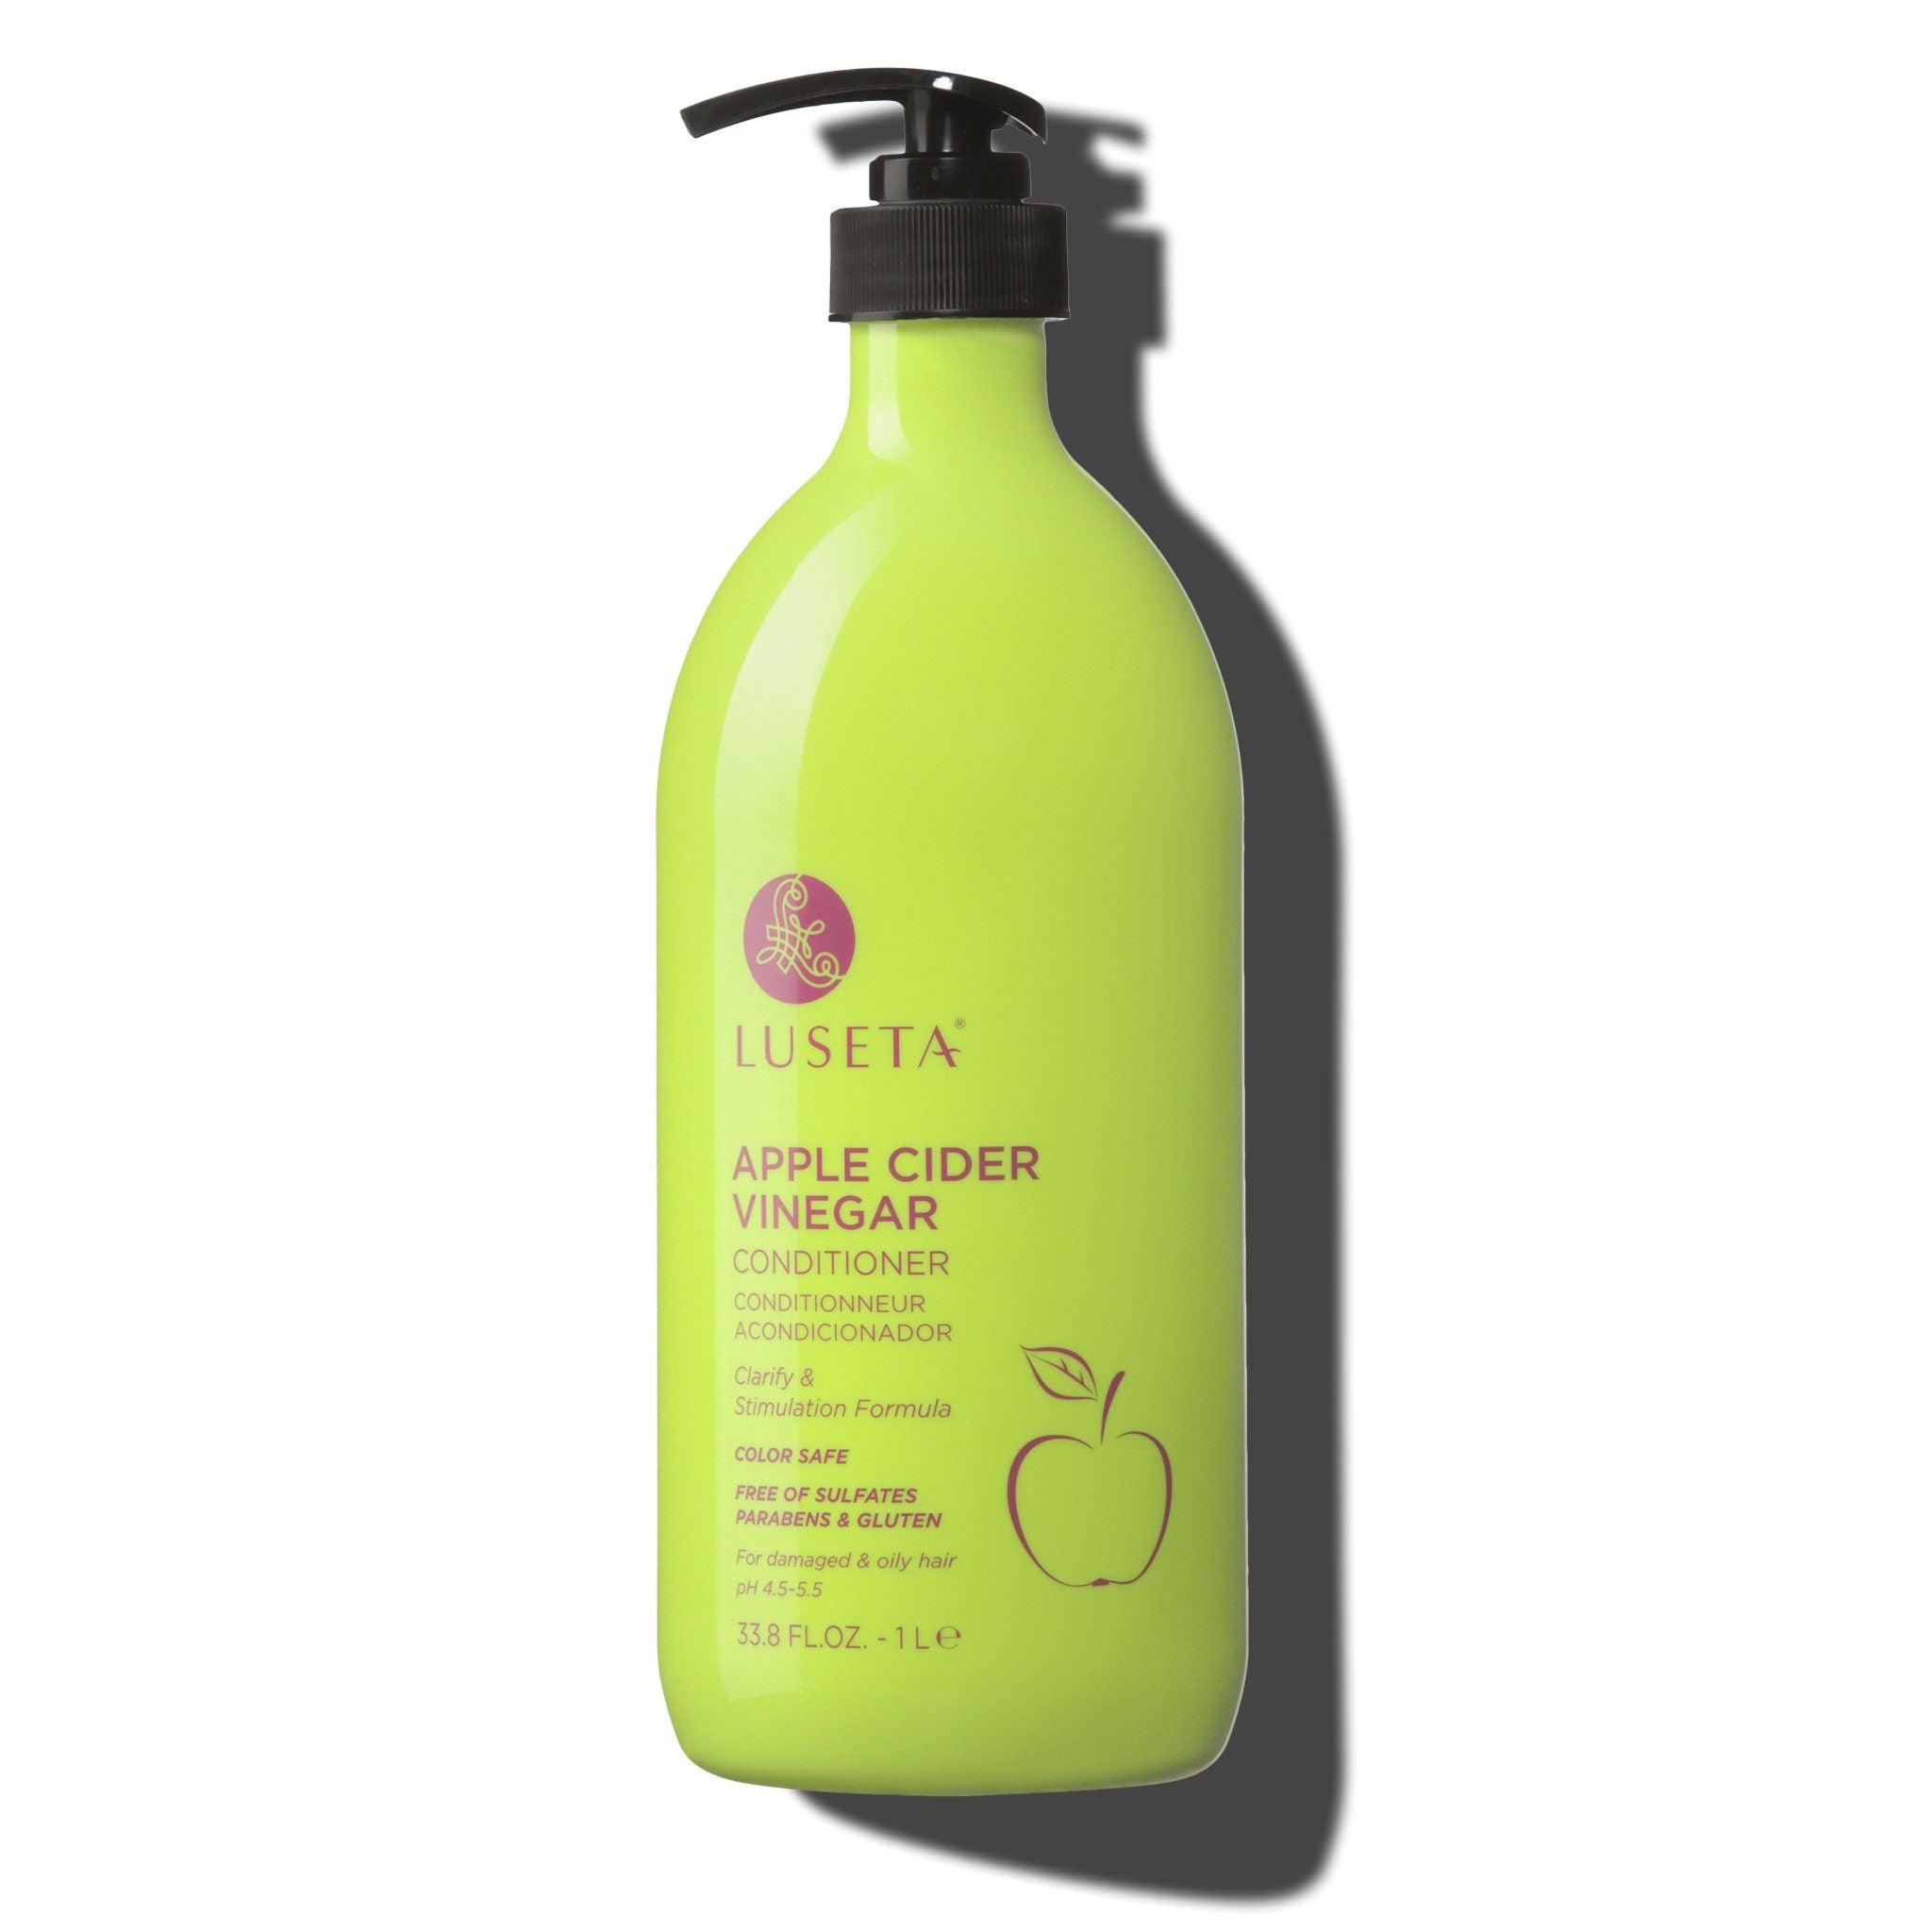 Apple Cider Vinegar Conditioner - Luseta Beauty